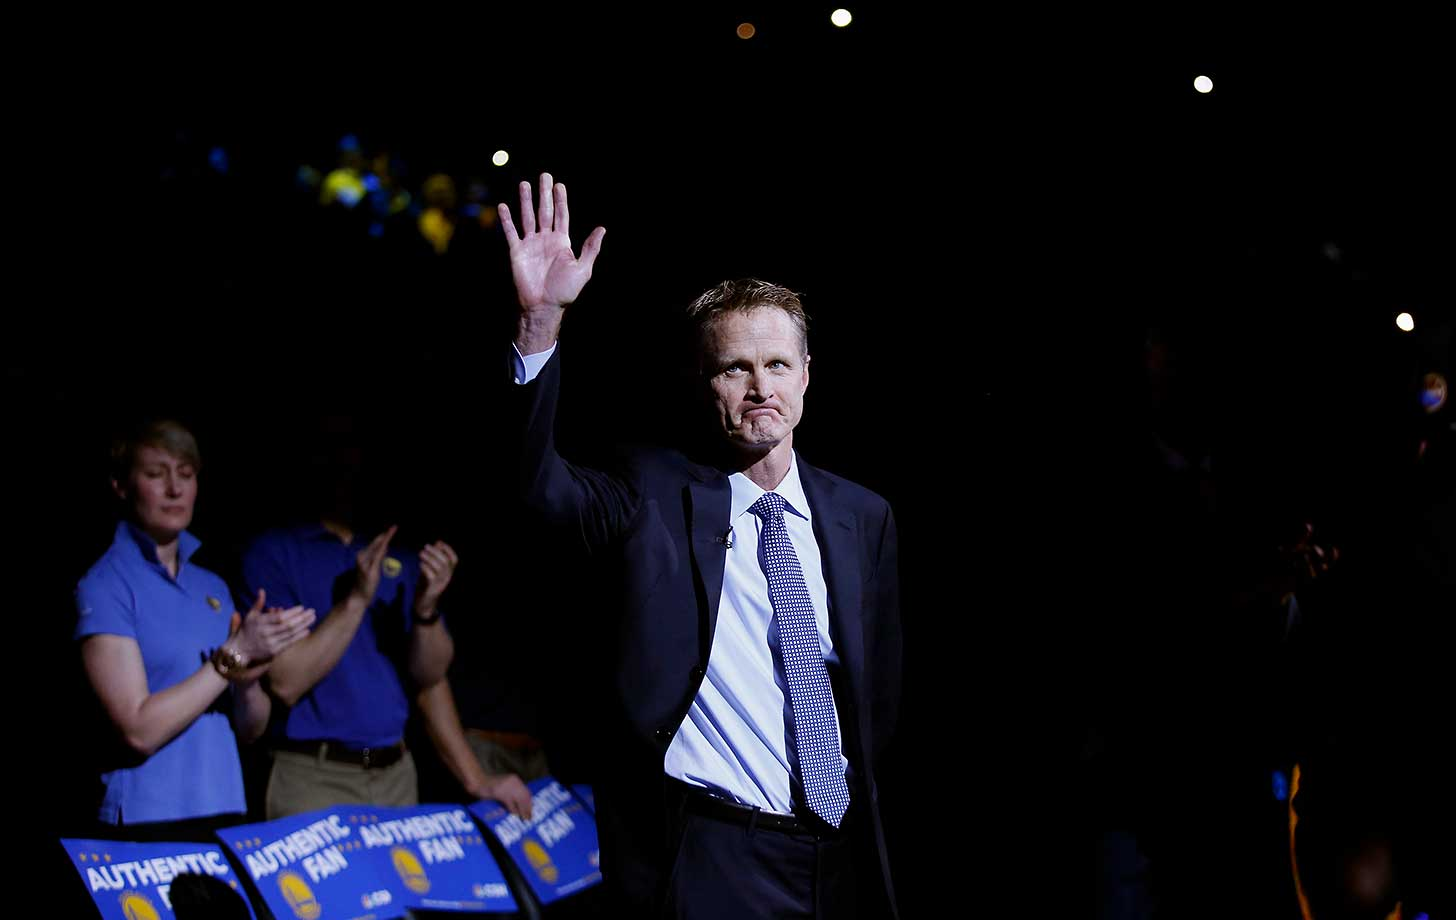 Head coach Steve Kerr waves to the crowd before his first game of the season. The Warriors coach had been out since Oct. 1 with complications following two back surgeries.